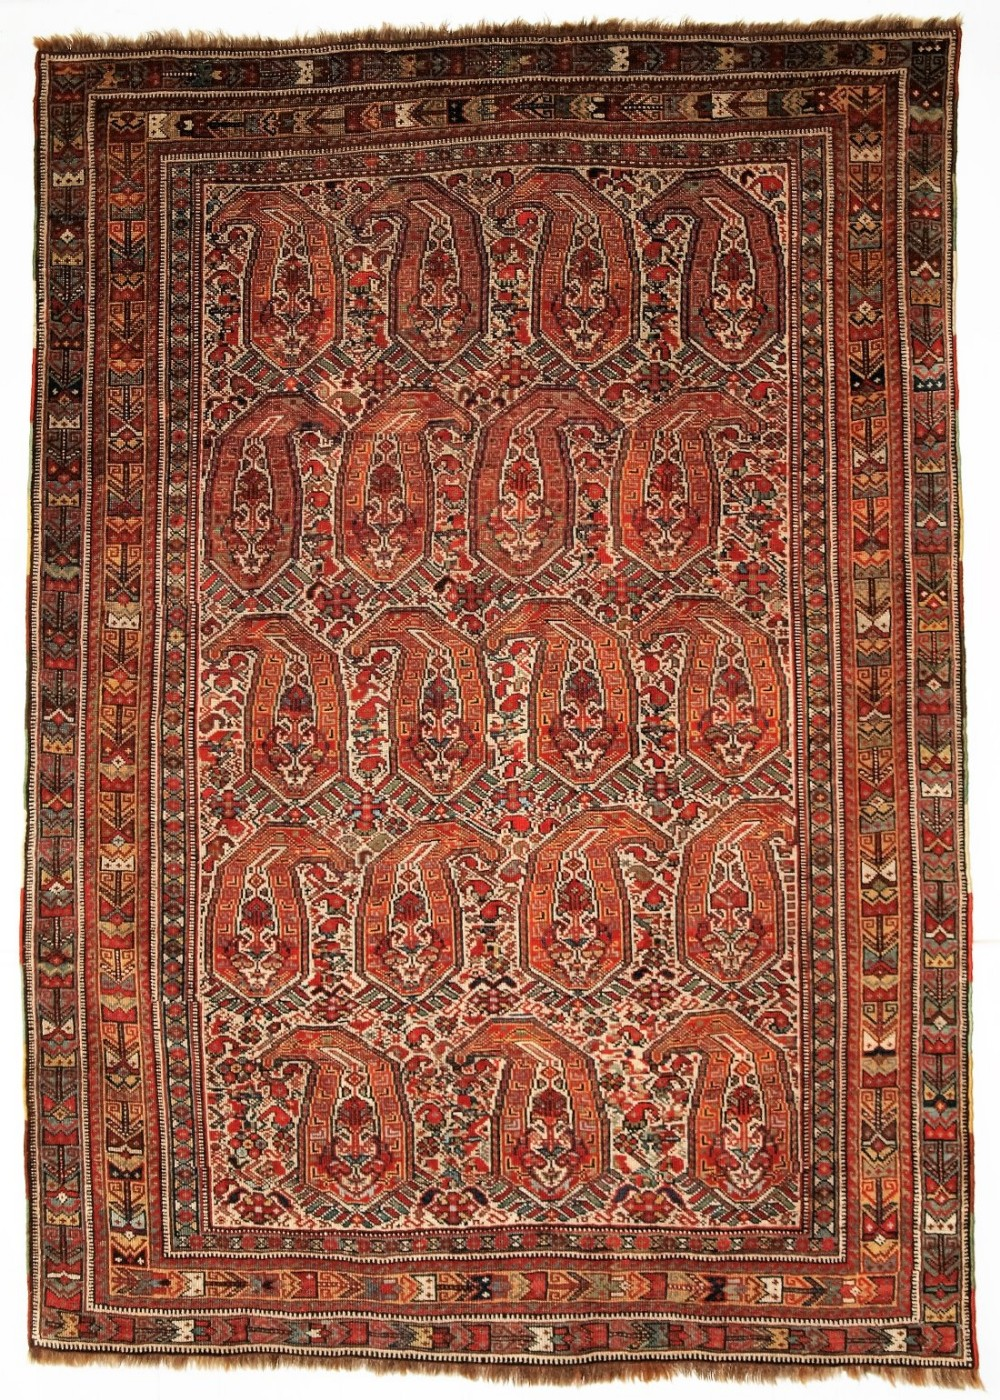 antique south west persian nomadic tribal khamseh rug with boteh design circa 1880